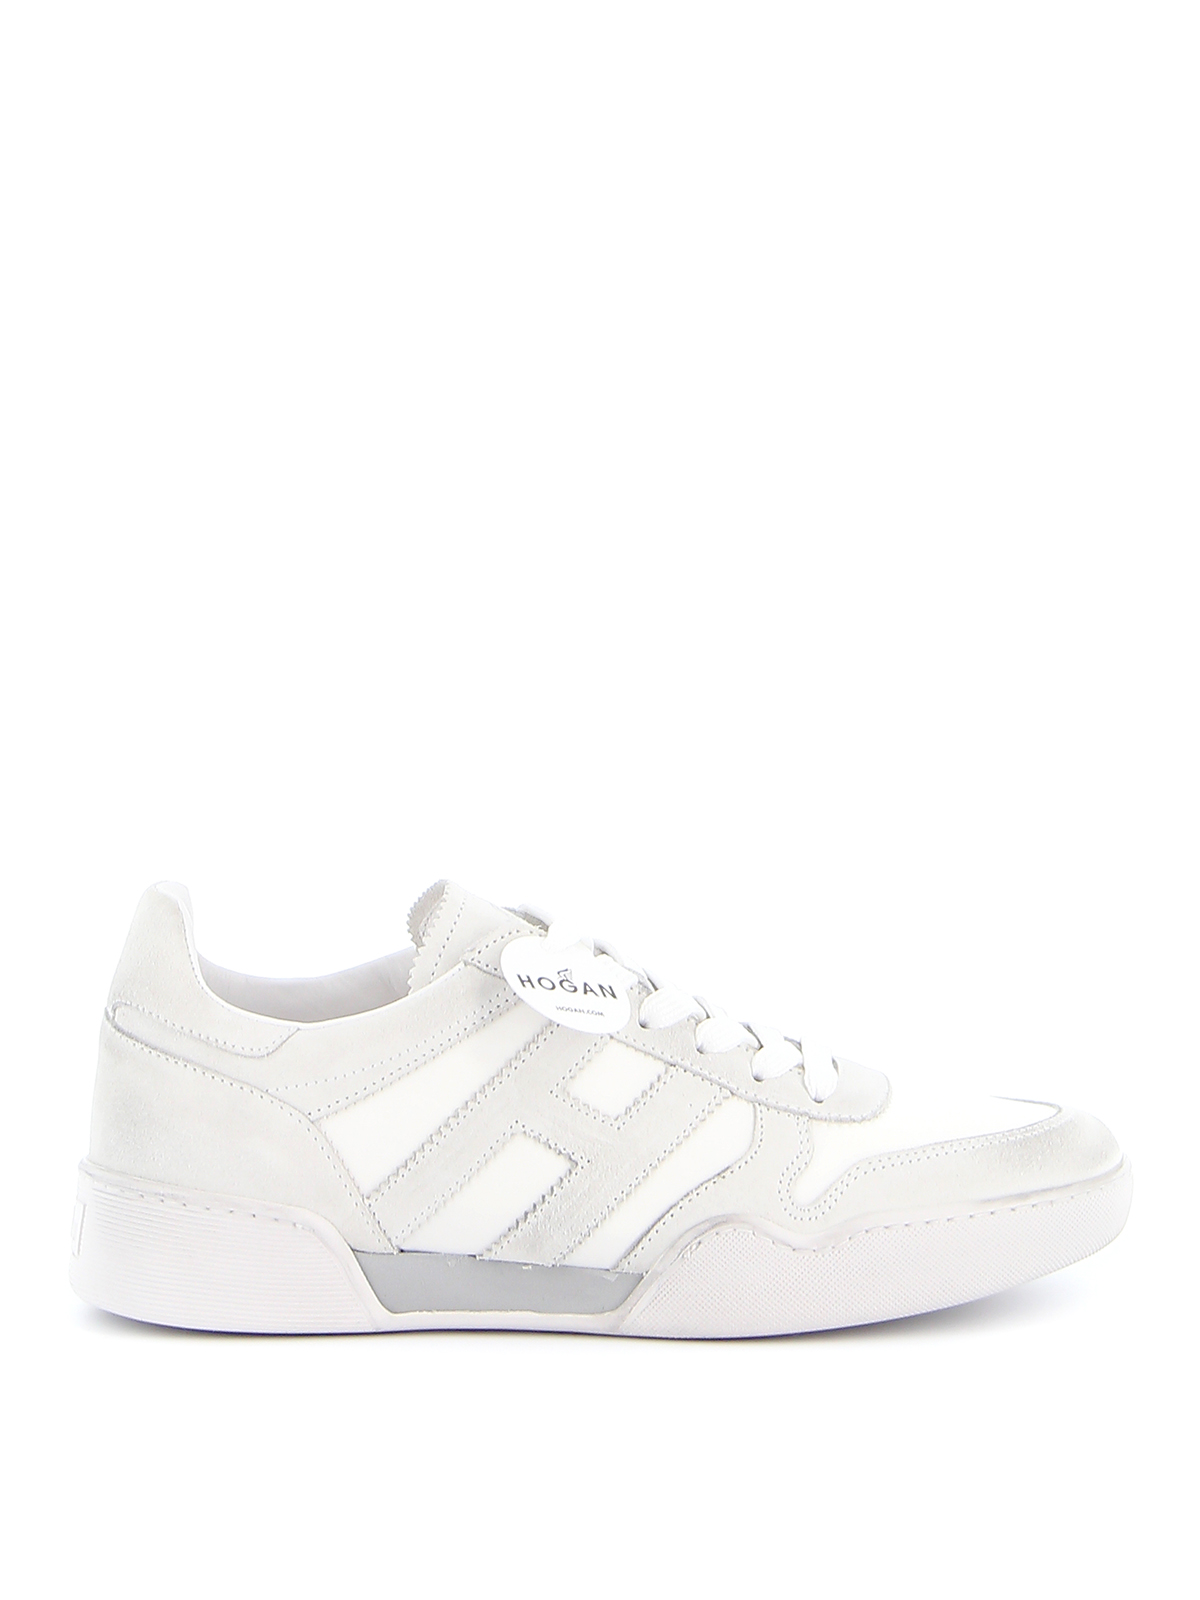 Trainers Hogan - H357 Retro Volley sneakers - HXW3570AC40NKBB001